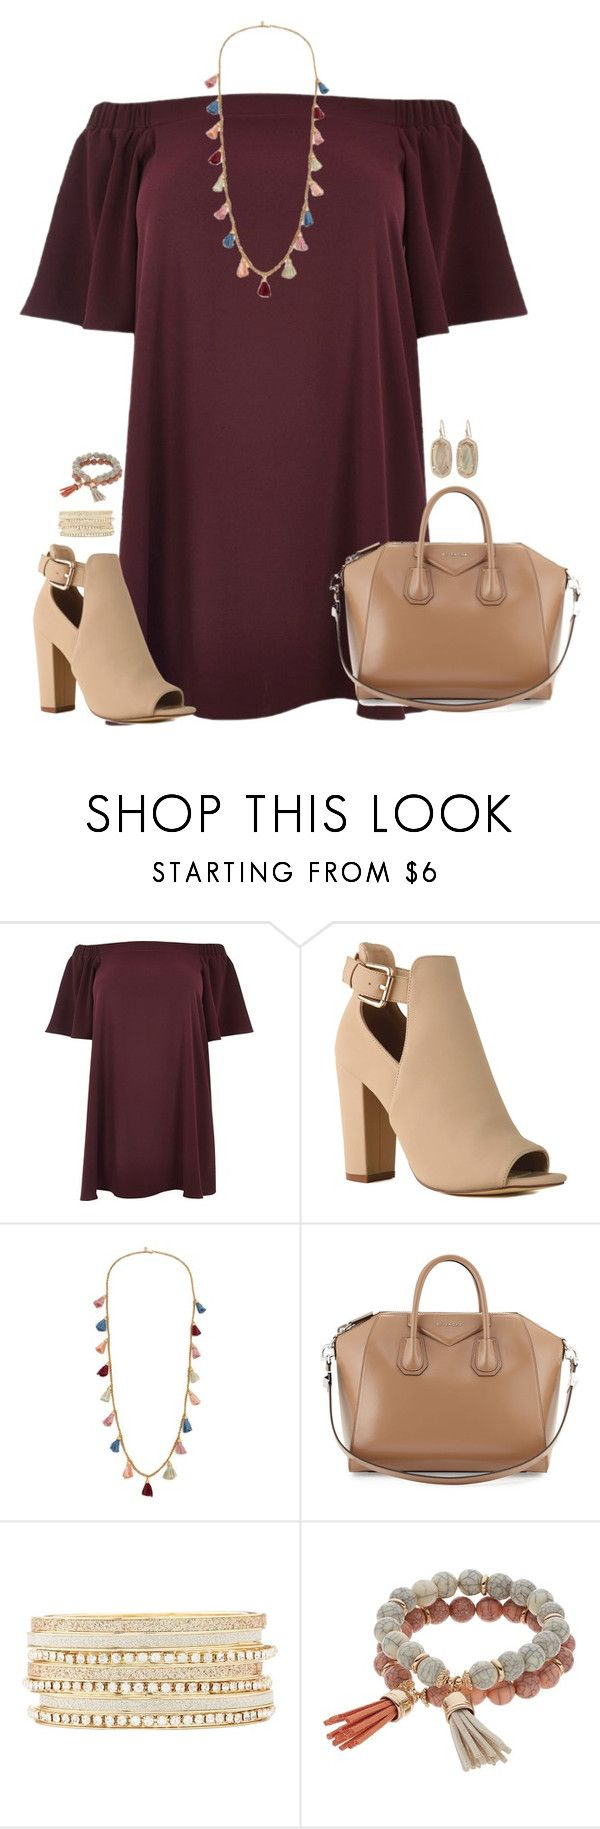 """❣︎"" by kaley-ii ❤ liked on Polyvore featuring River Island, Ben-Amun, Givenchy, Charlotte Russe, Coco Lane, Kendra Scott and plus size dresses"